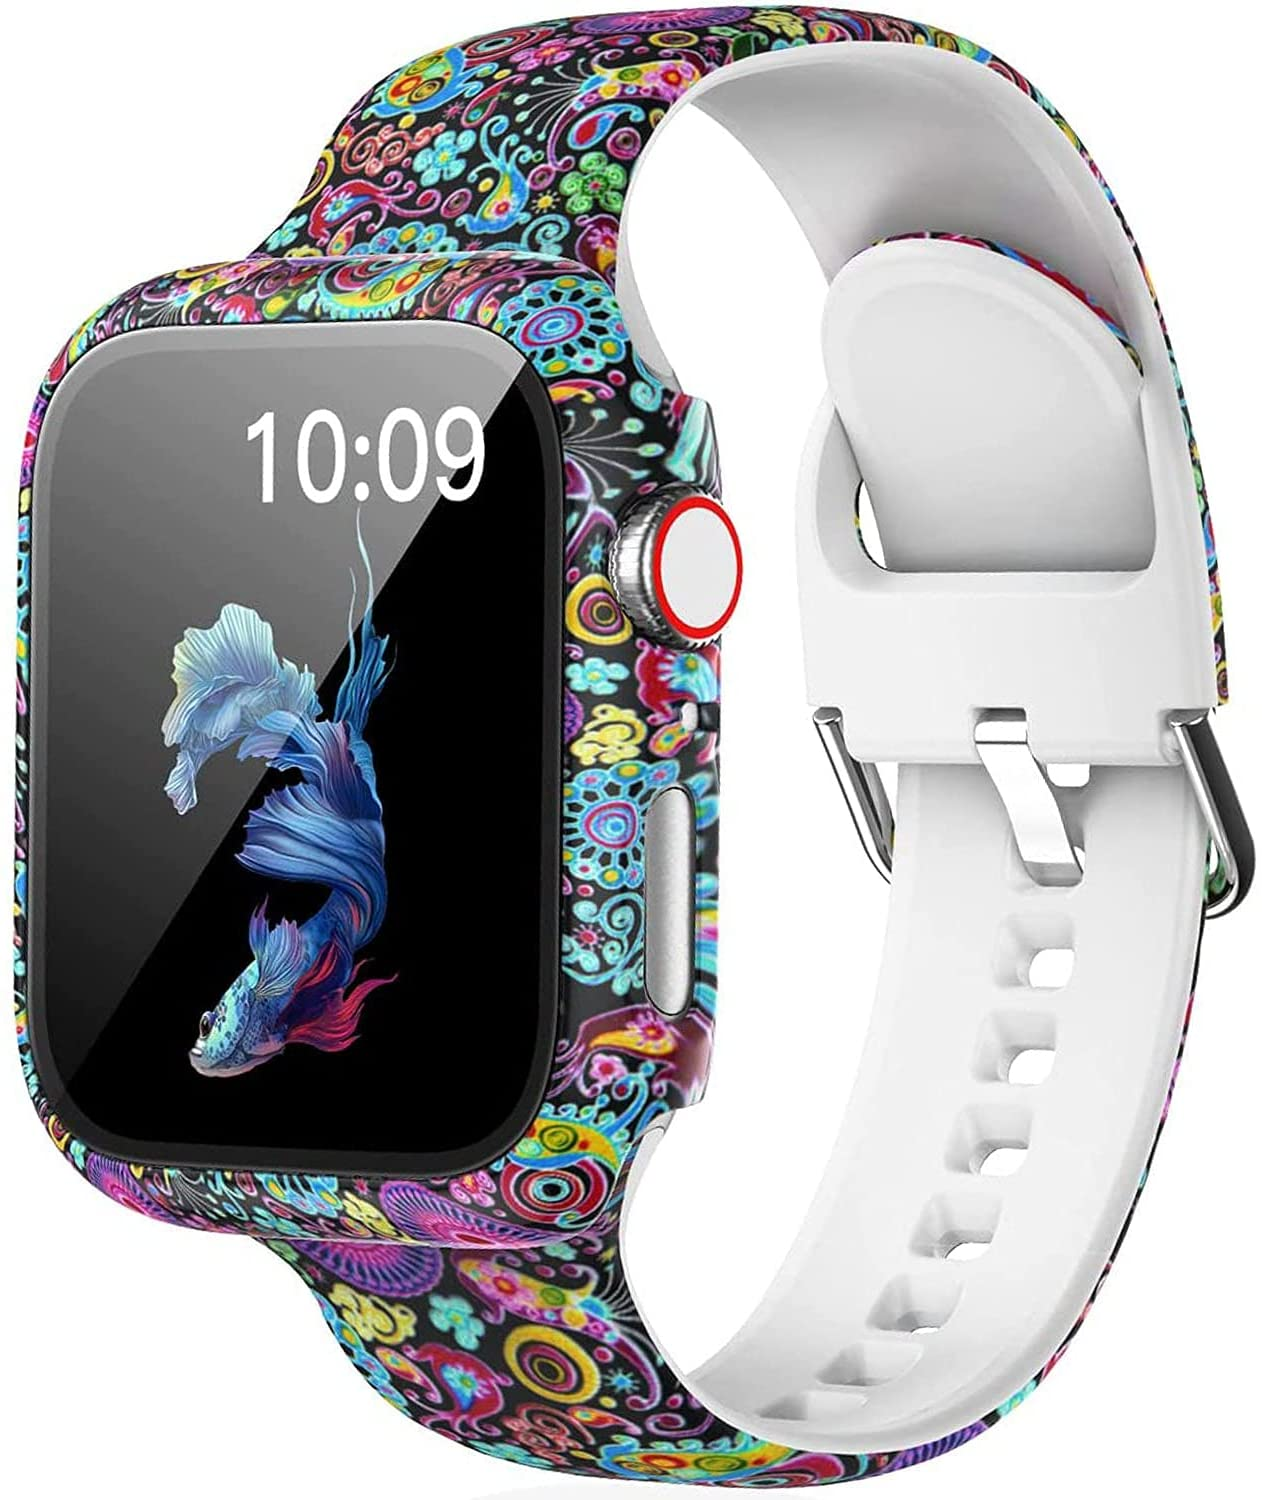 LKEITY Floral Printed Sport Silicone Band Compatible for Apple Watch Bands 38mm 40mm 44mm 42mm, Soft Fadeless Pattern Strap with Screen Protector Cover Case for iWatch Series SE 6 5 4 3 2 1 Women Men